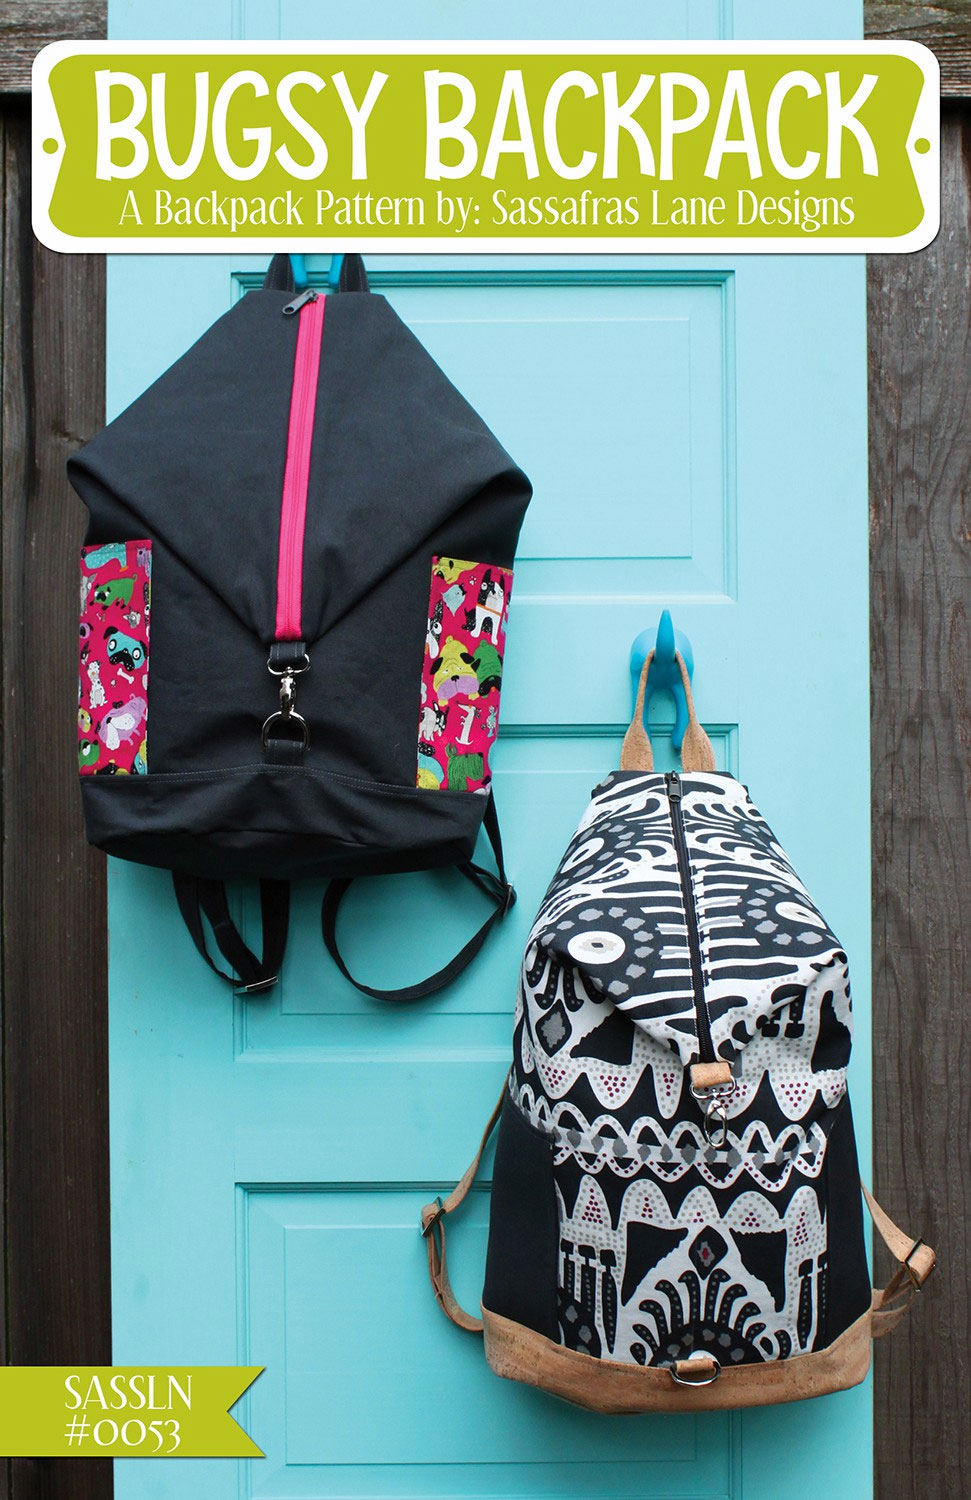 Bugsy-Backpack-sewing-pattern-Sassafras-Lane-Designs-front